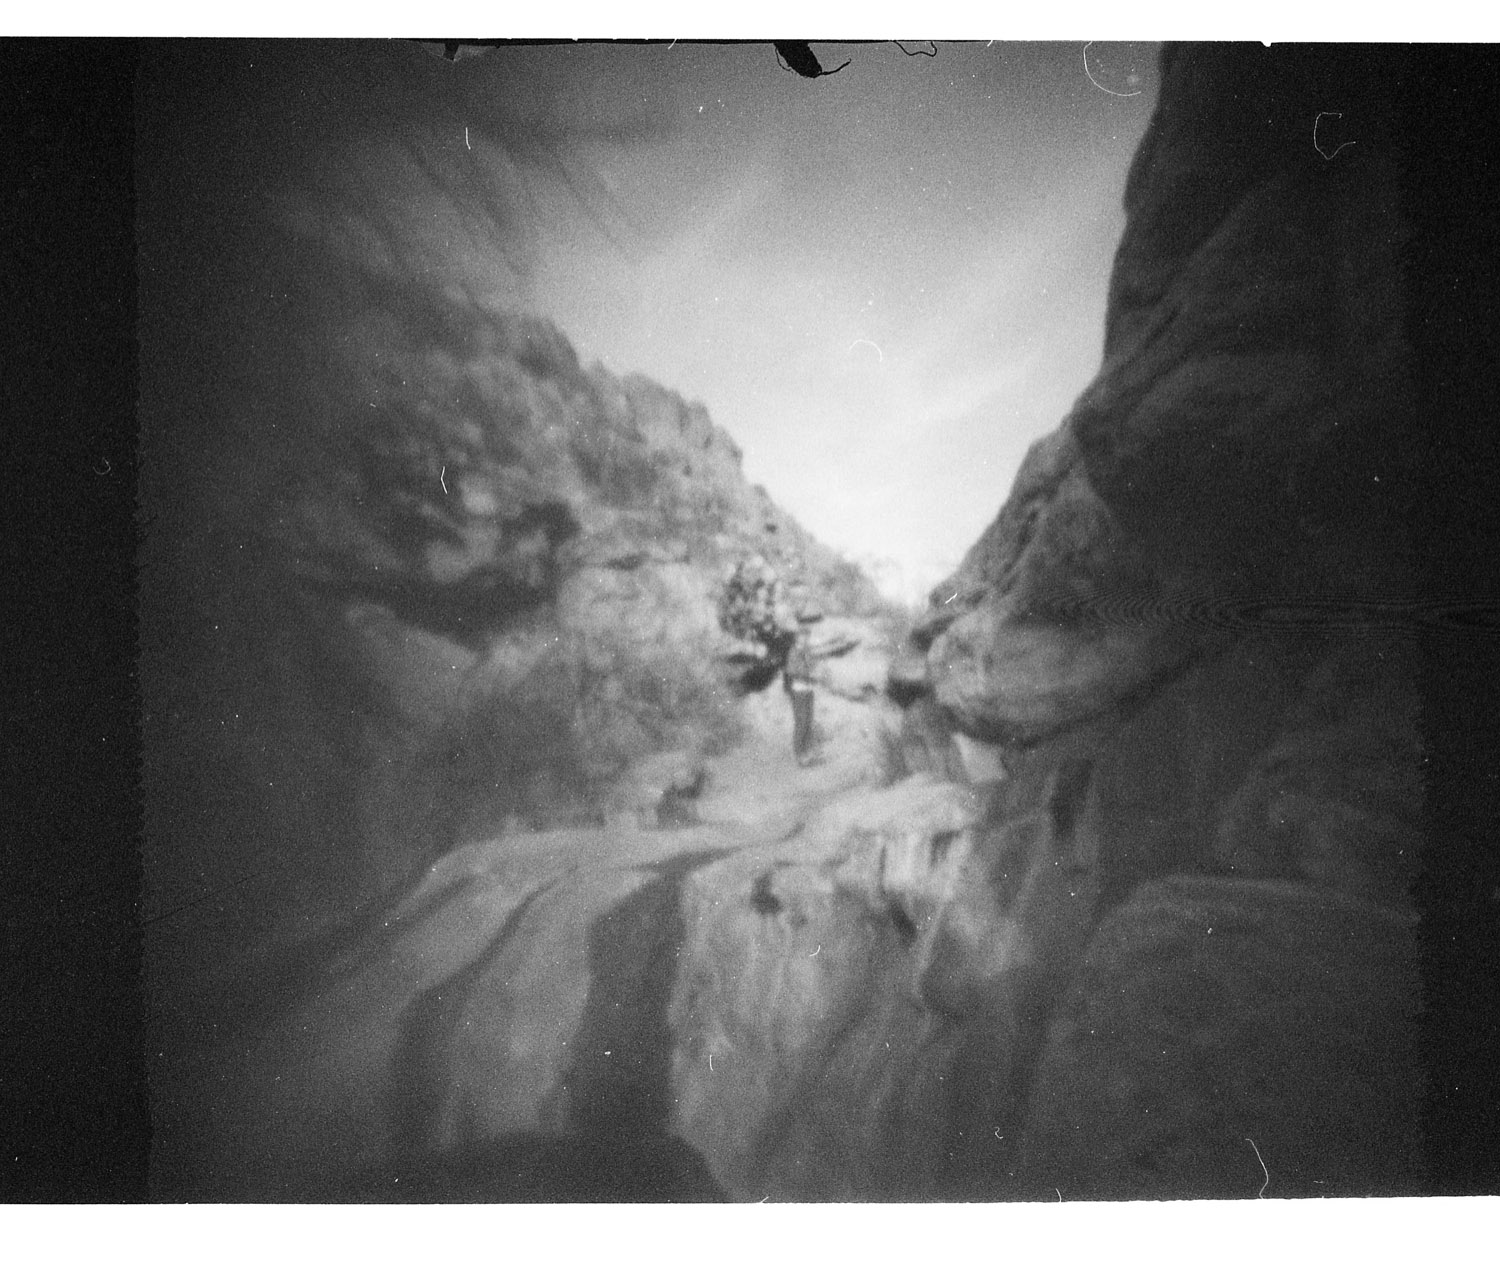 Dog Canyon, NM. Frozen Photon 24Squared pinhole camera